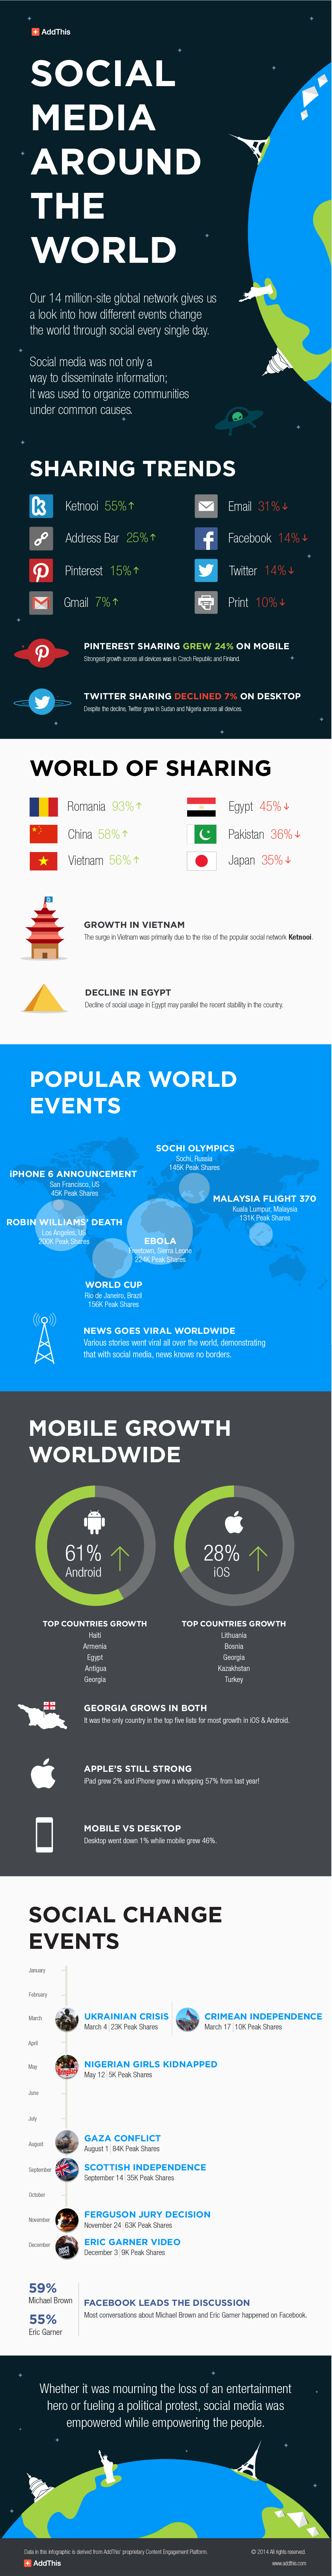 addthis-year-in-review-2014-infographic